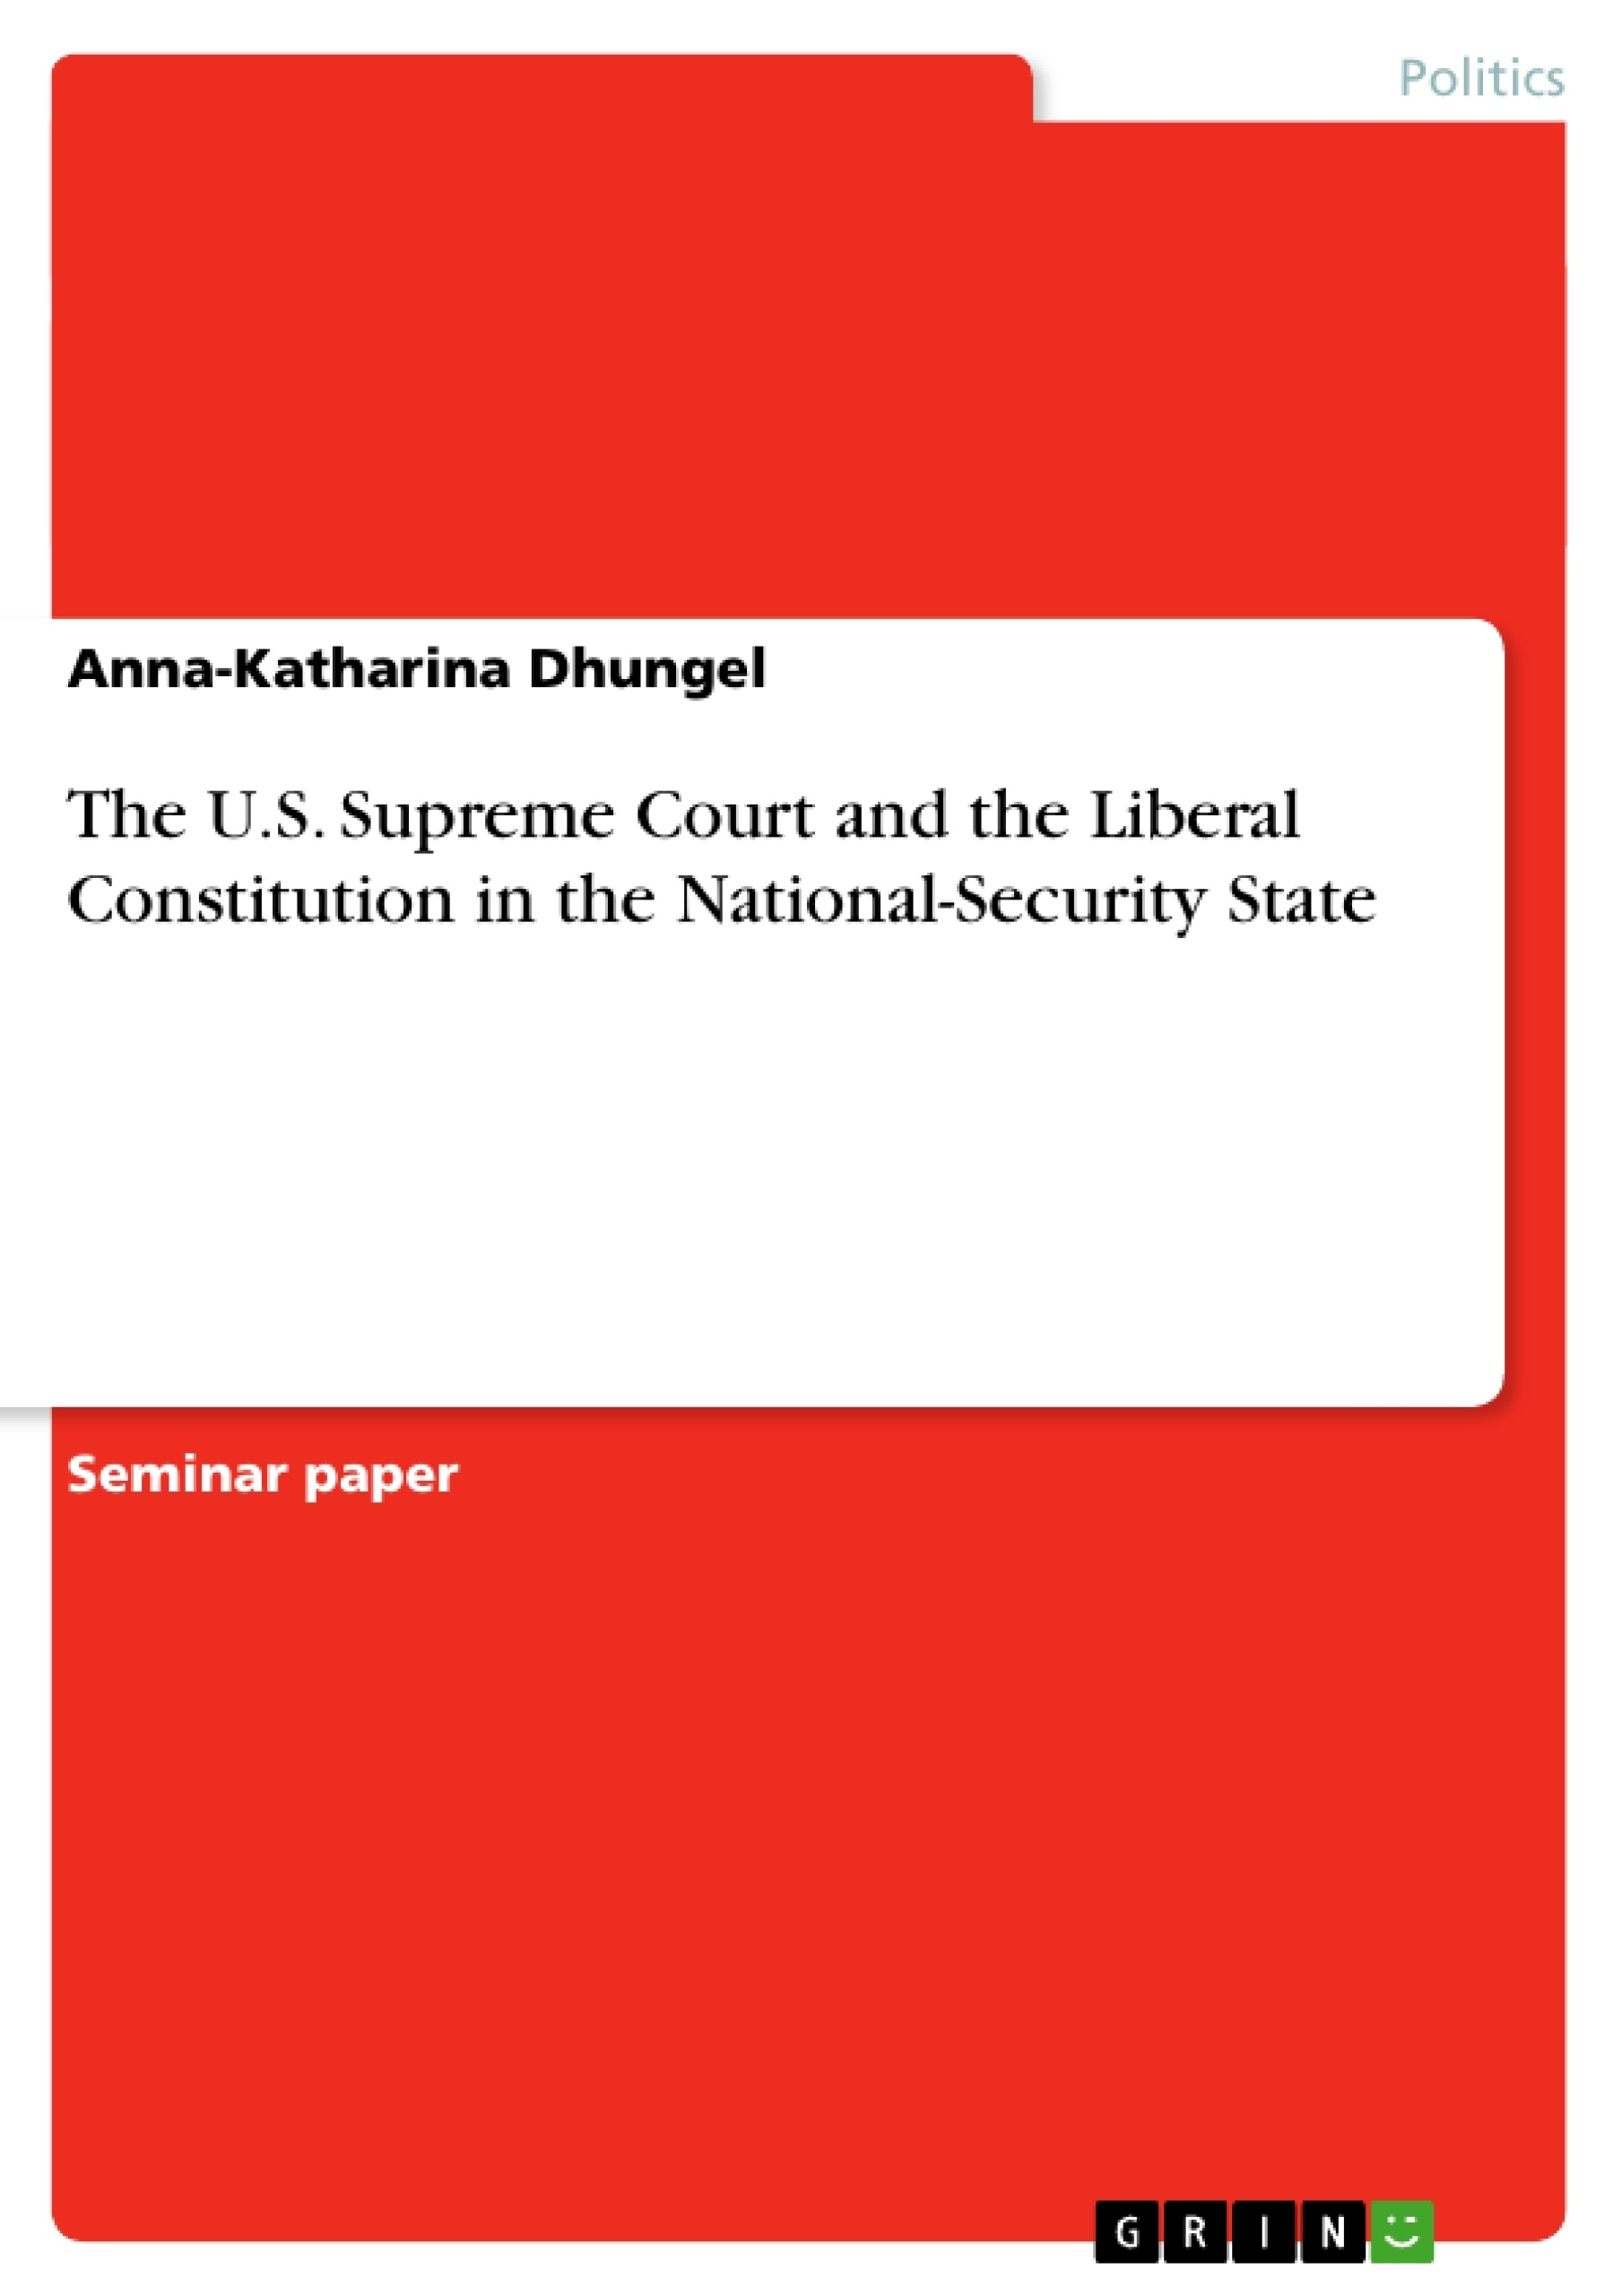 Title: The U.S. Supreme Court and the Liberal Constitution in the National-Security State